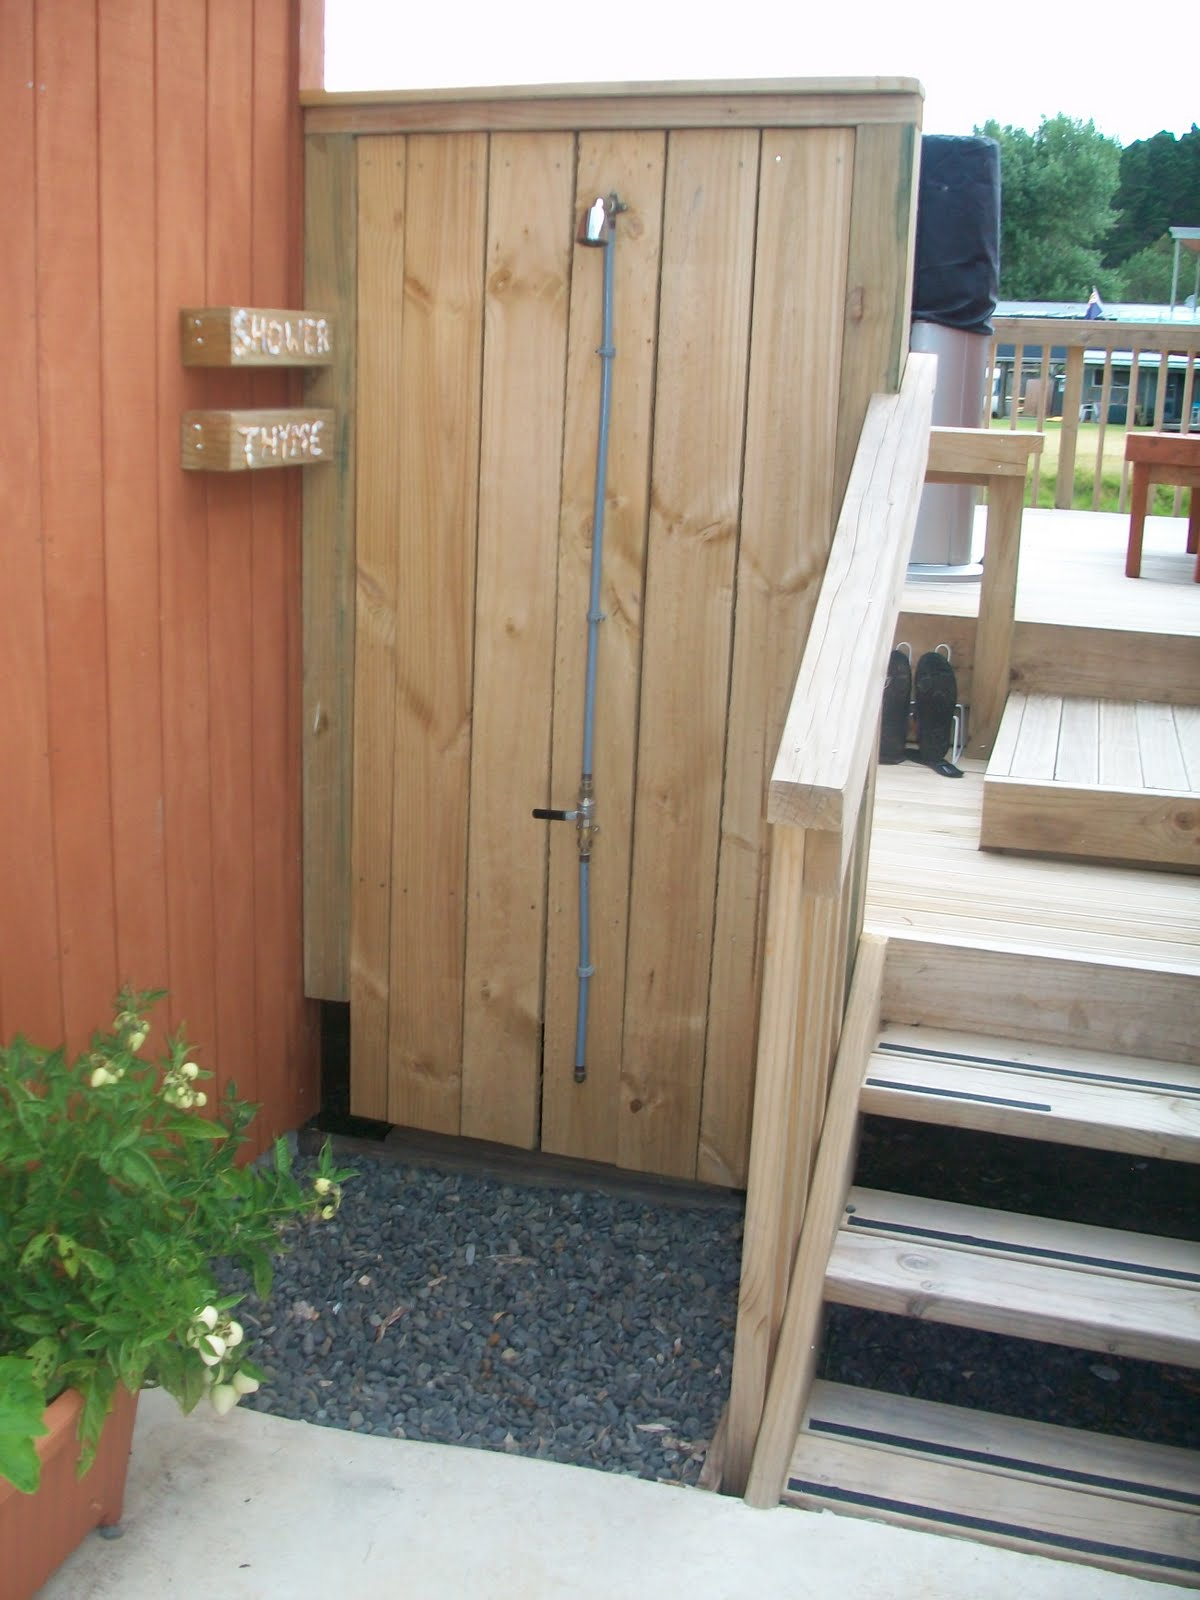 THYME COTTAGES: OUTDOOR SHOWERS